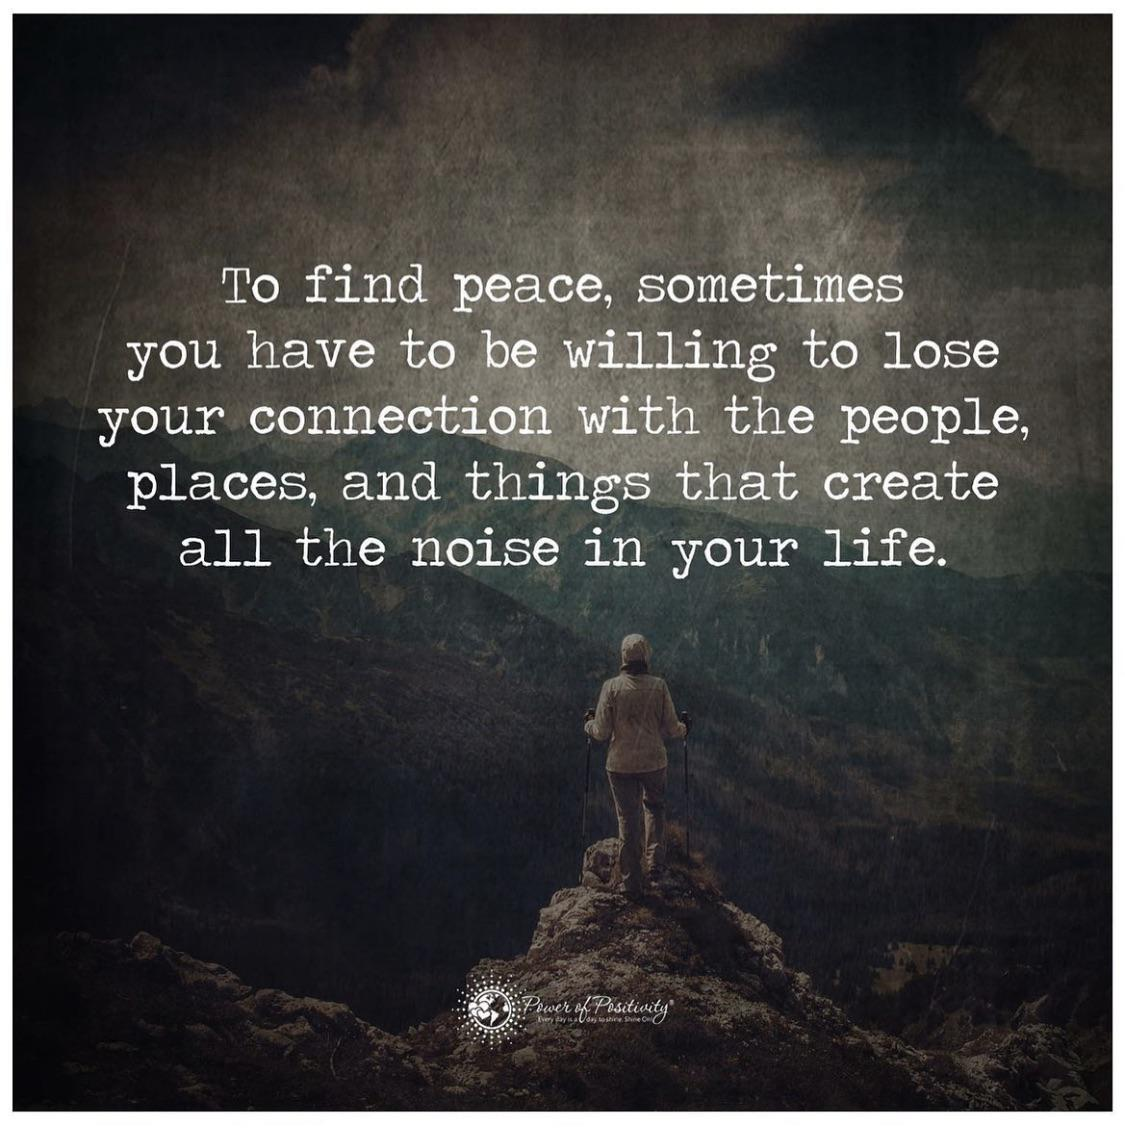 [Image] To get peace, sometimes you have to be willing to lose your connection with the people, places, and things that create all the noise in your life. – Anonymous